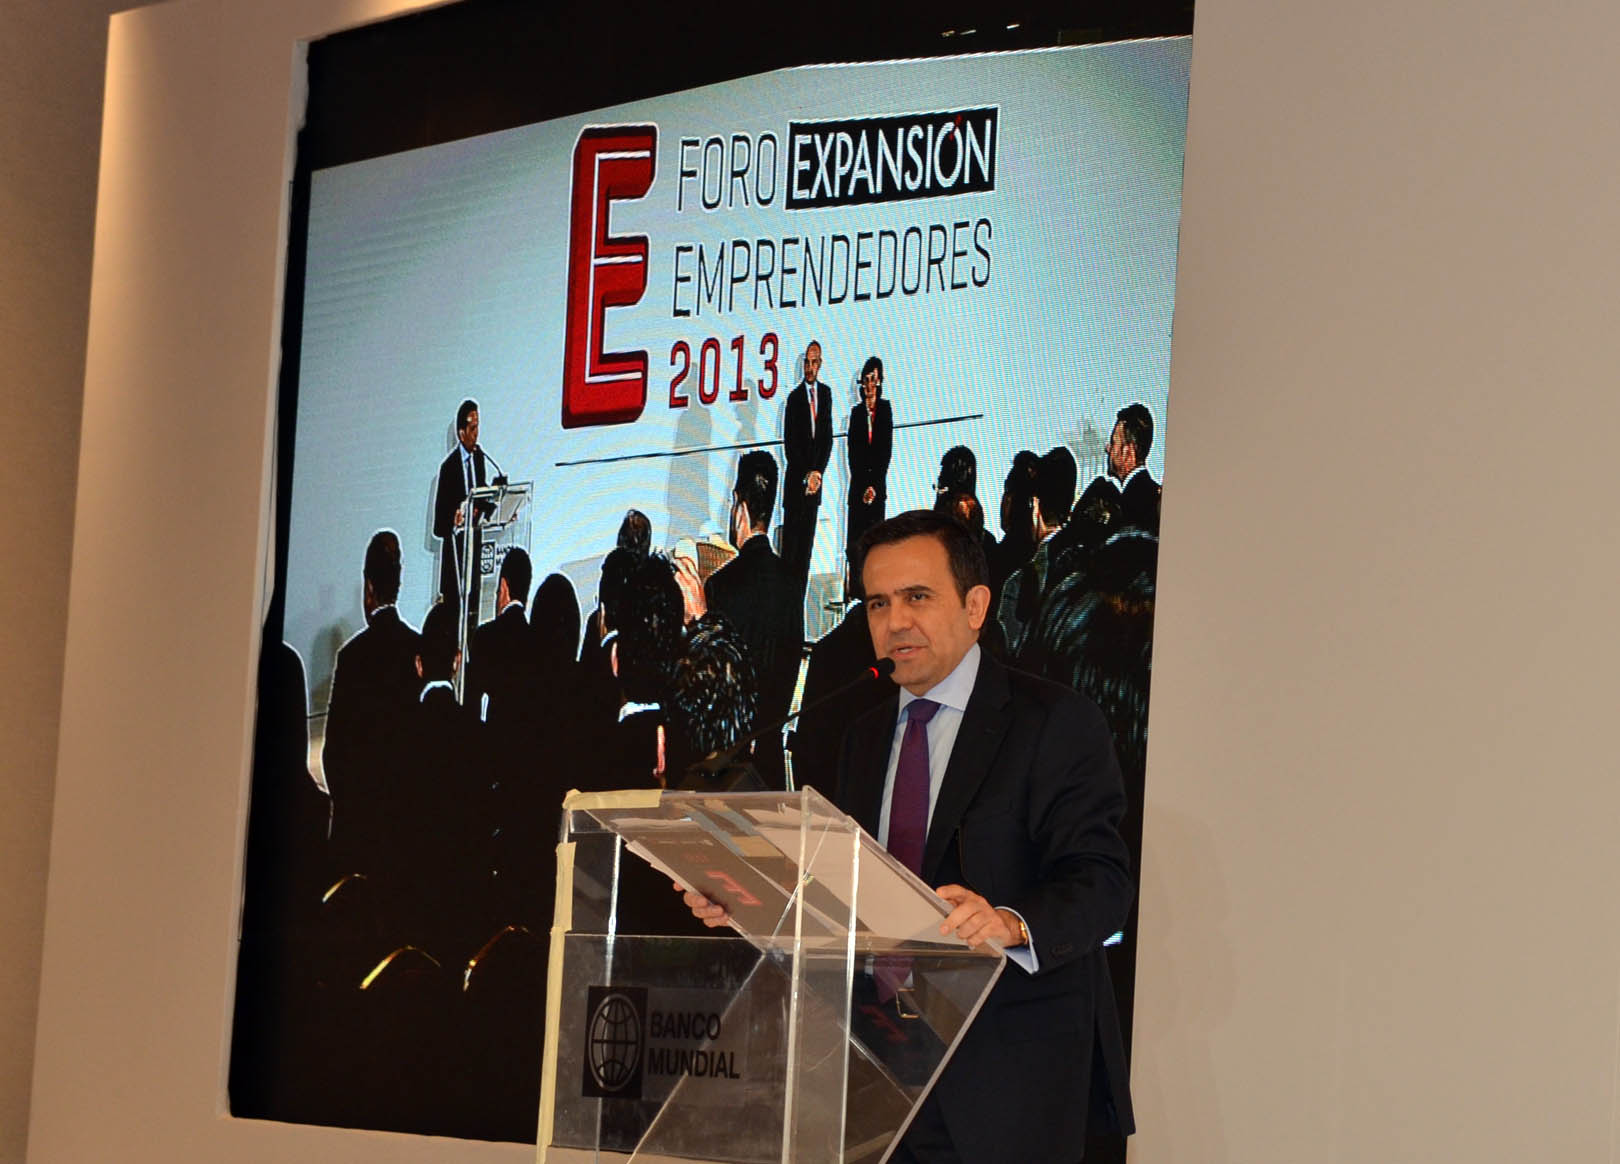 Foro emprendedores expansin 1